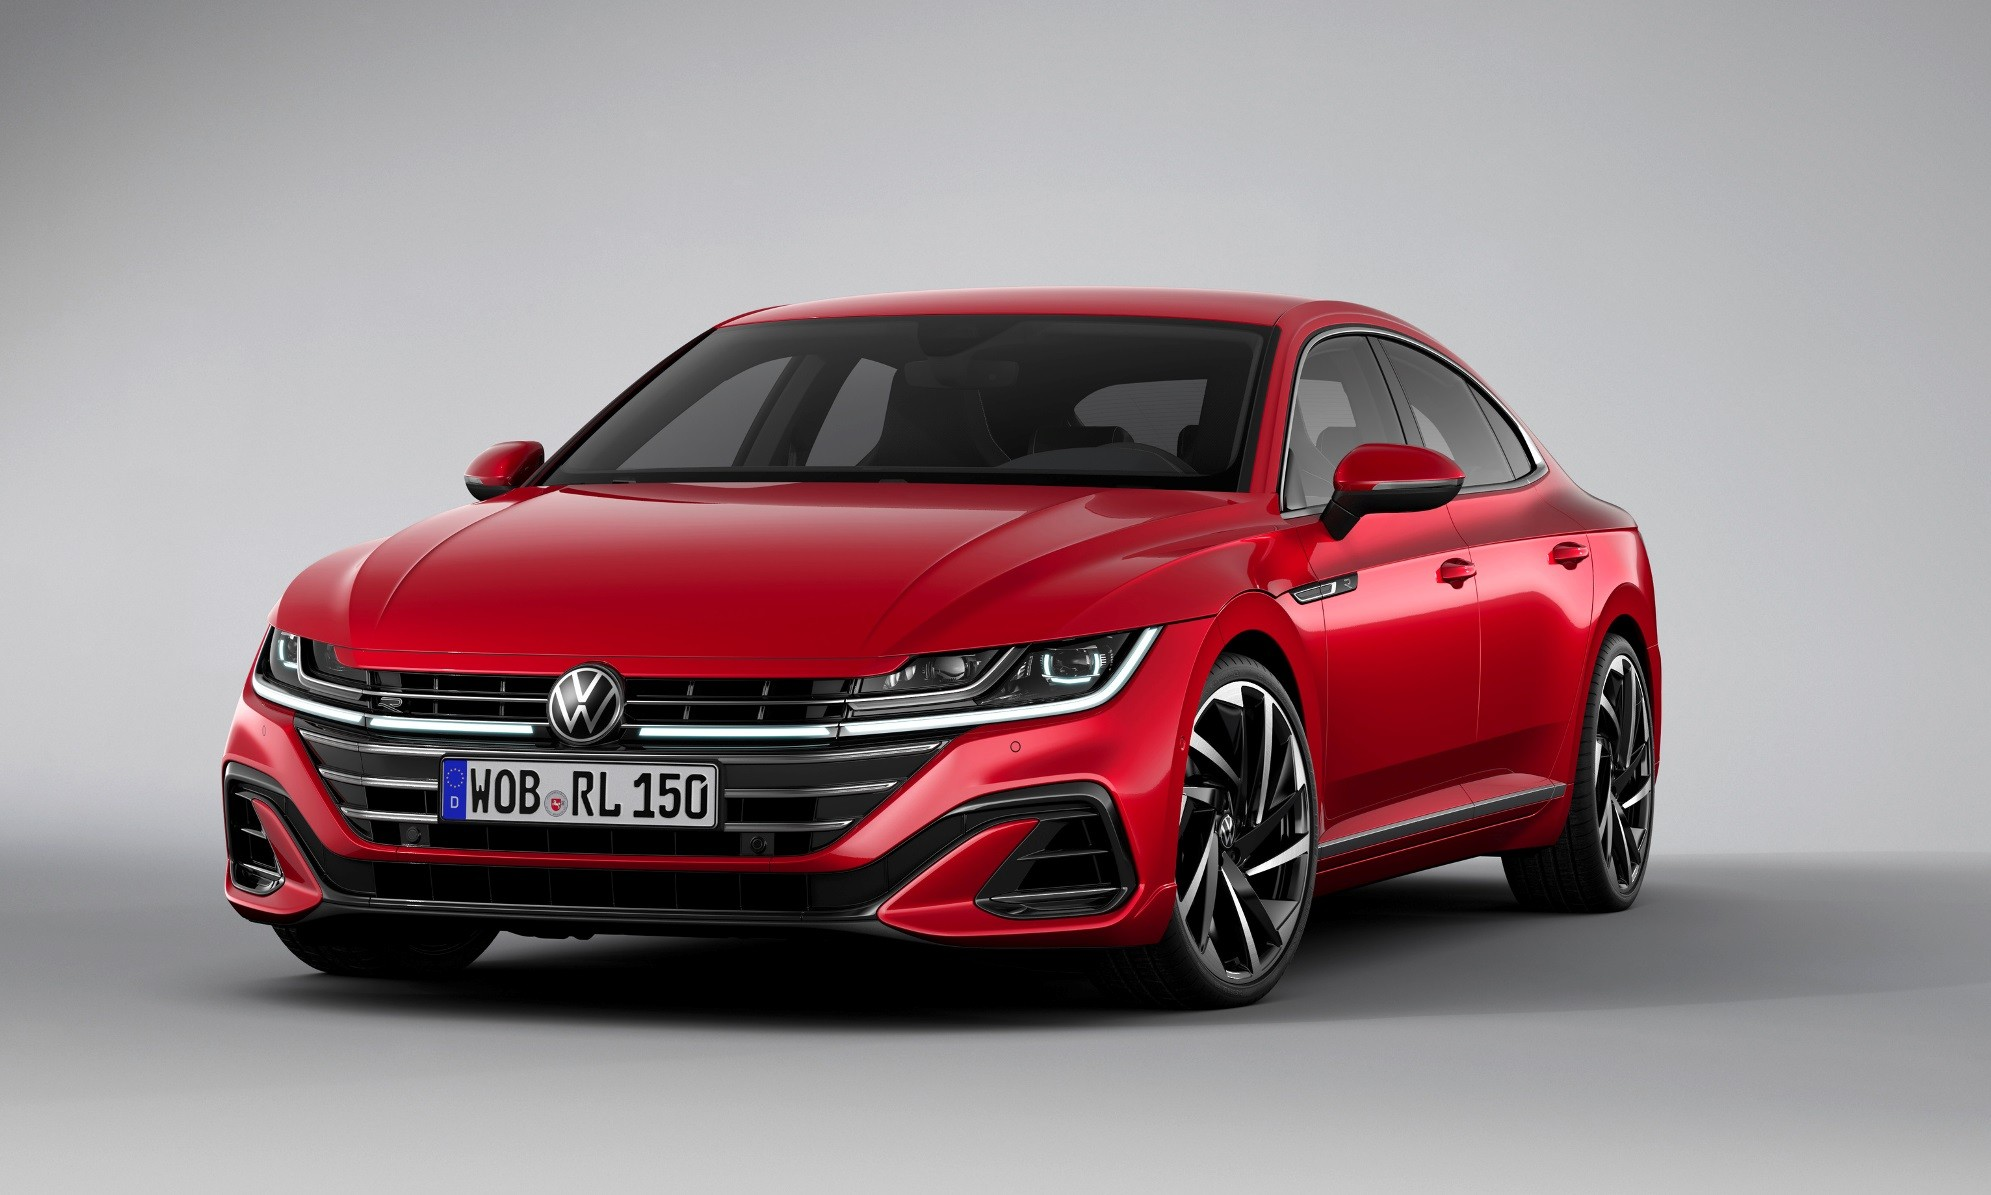 Facelifted VW Arteon